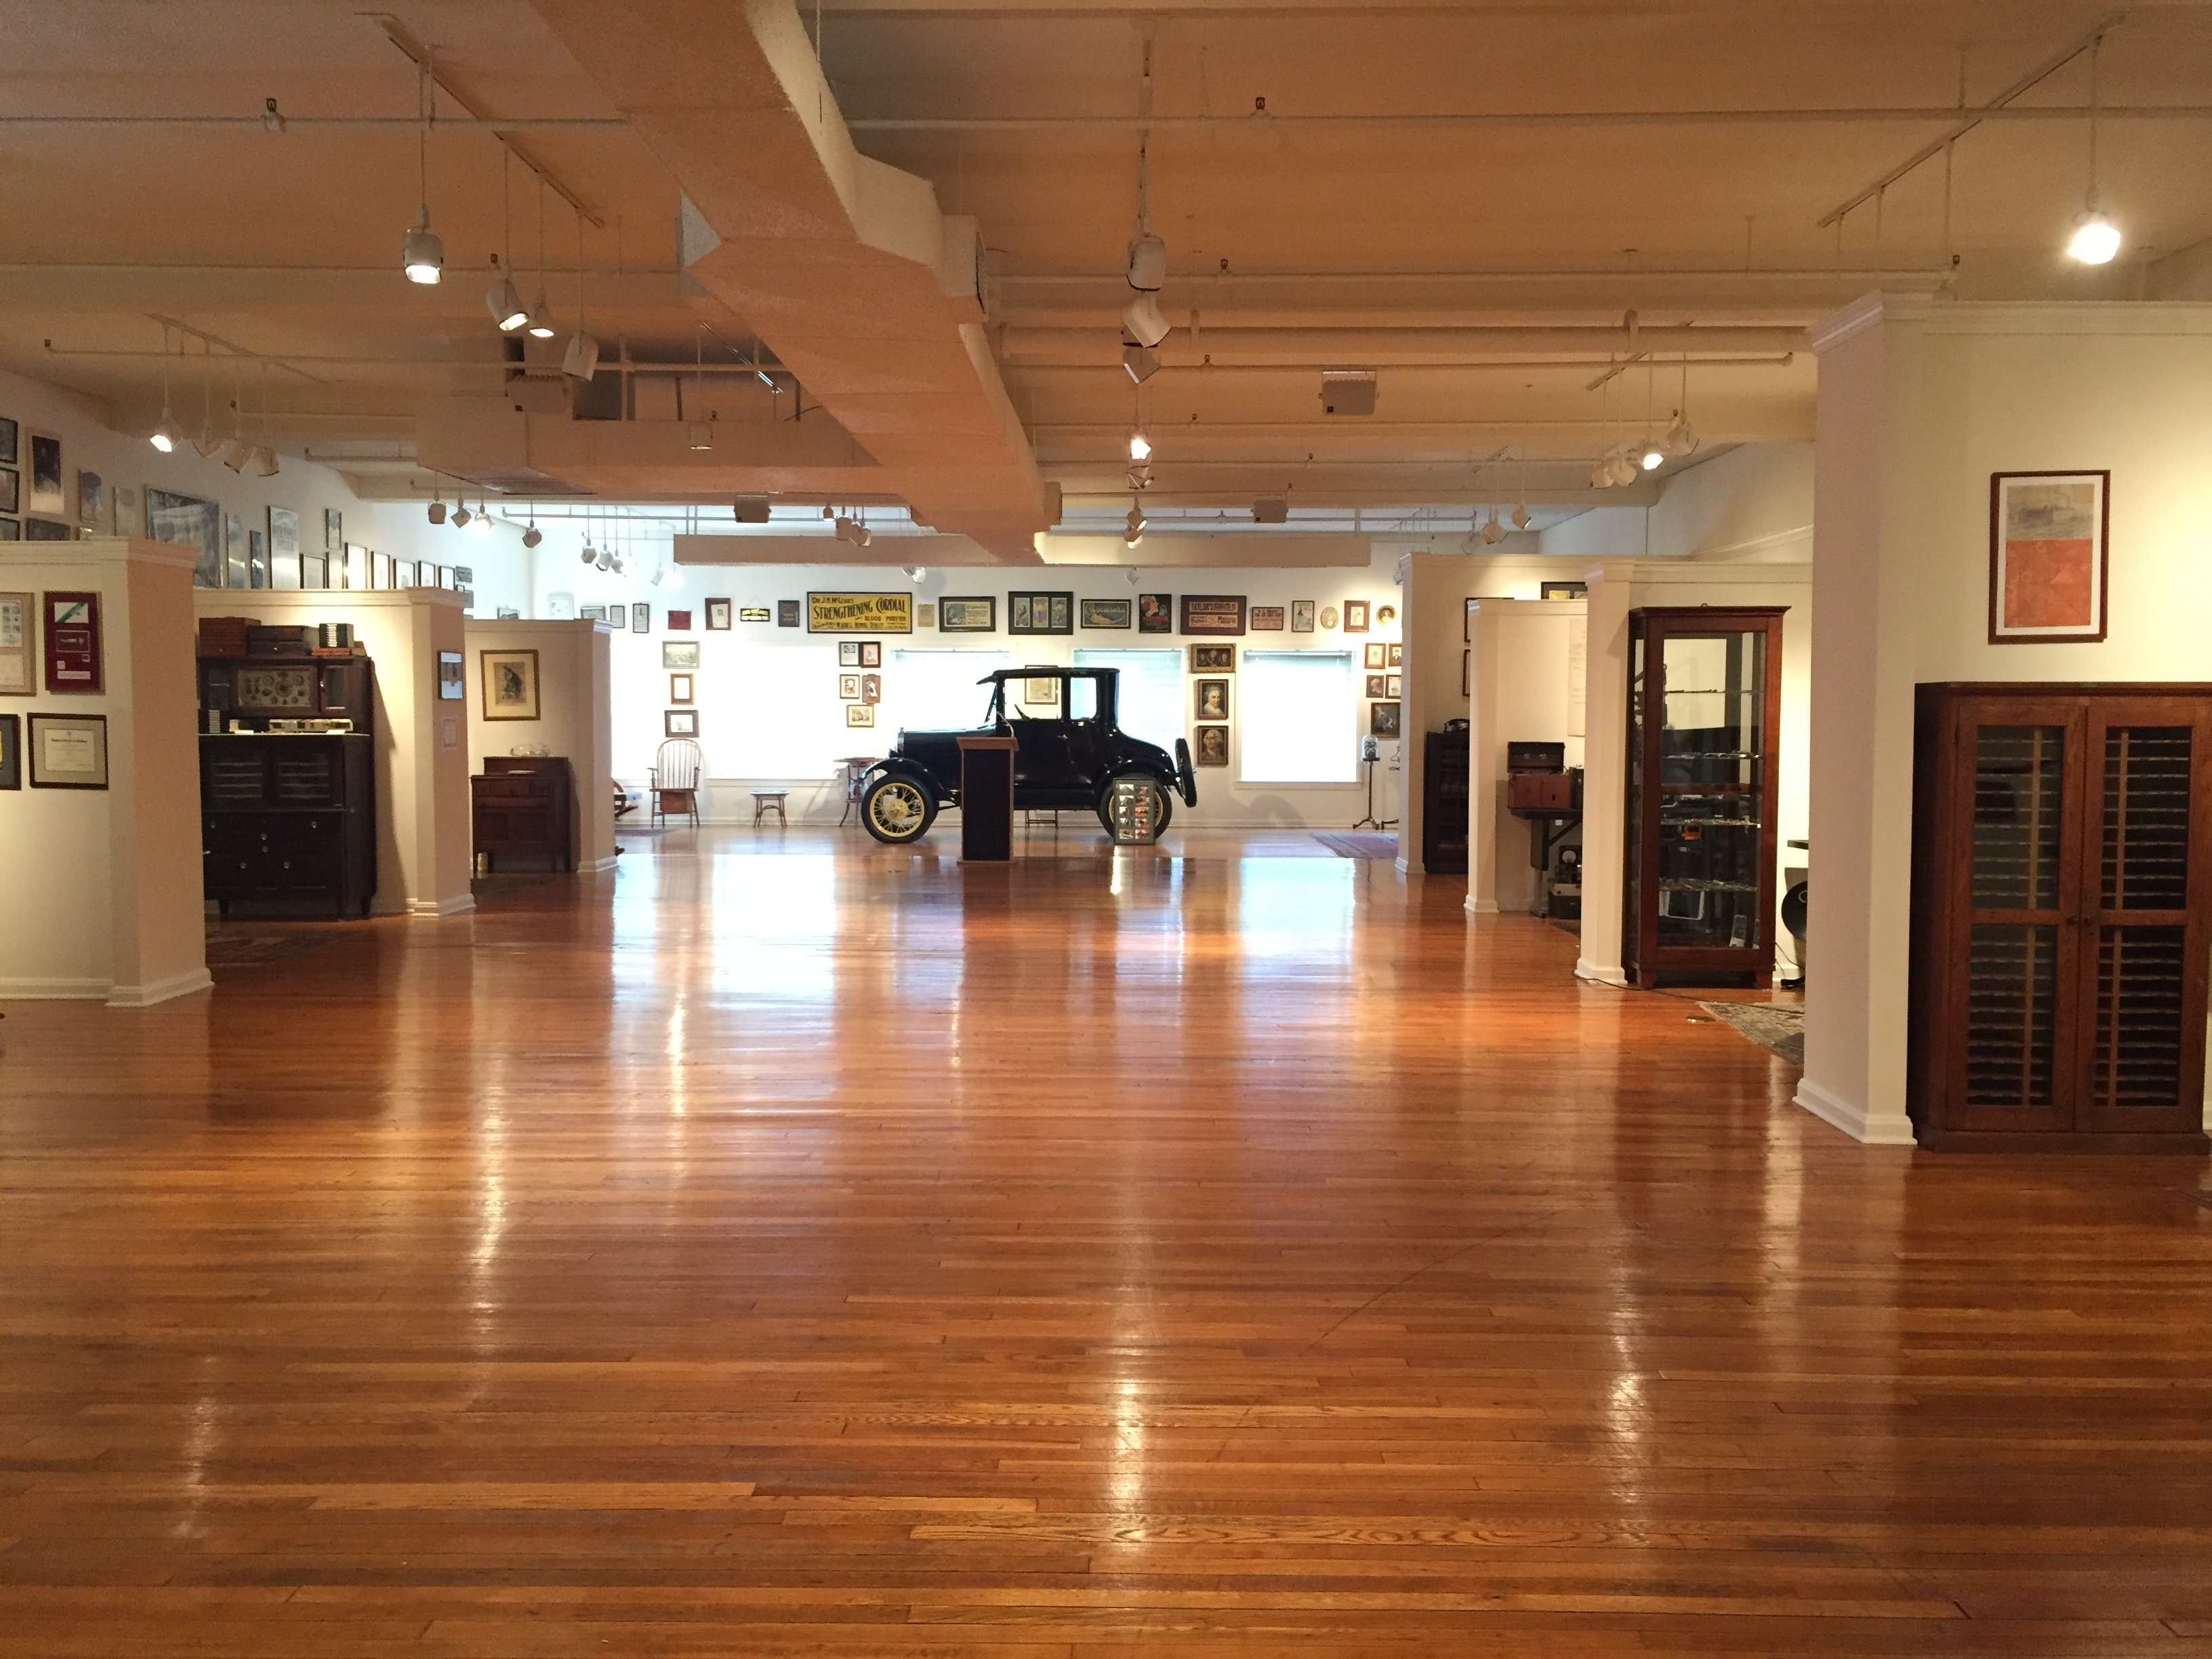 To the right are the galleries of microscopy, ophthalmology, cardiovascular, etc. To the left is the physician's examining room, dentistry and wheelchairs, etc. The car is a completely restored 1926 Ford Model T known as the Doctor's Coupe.